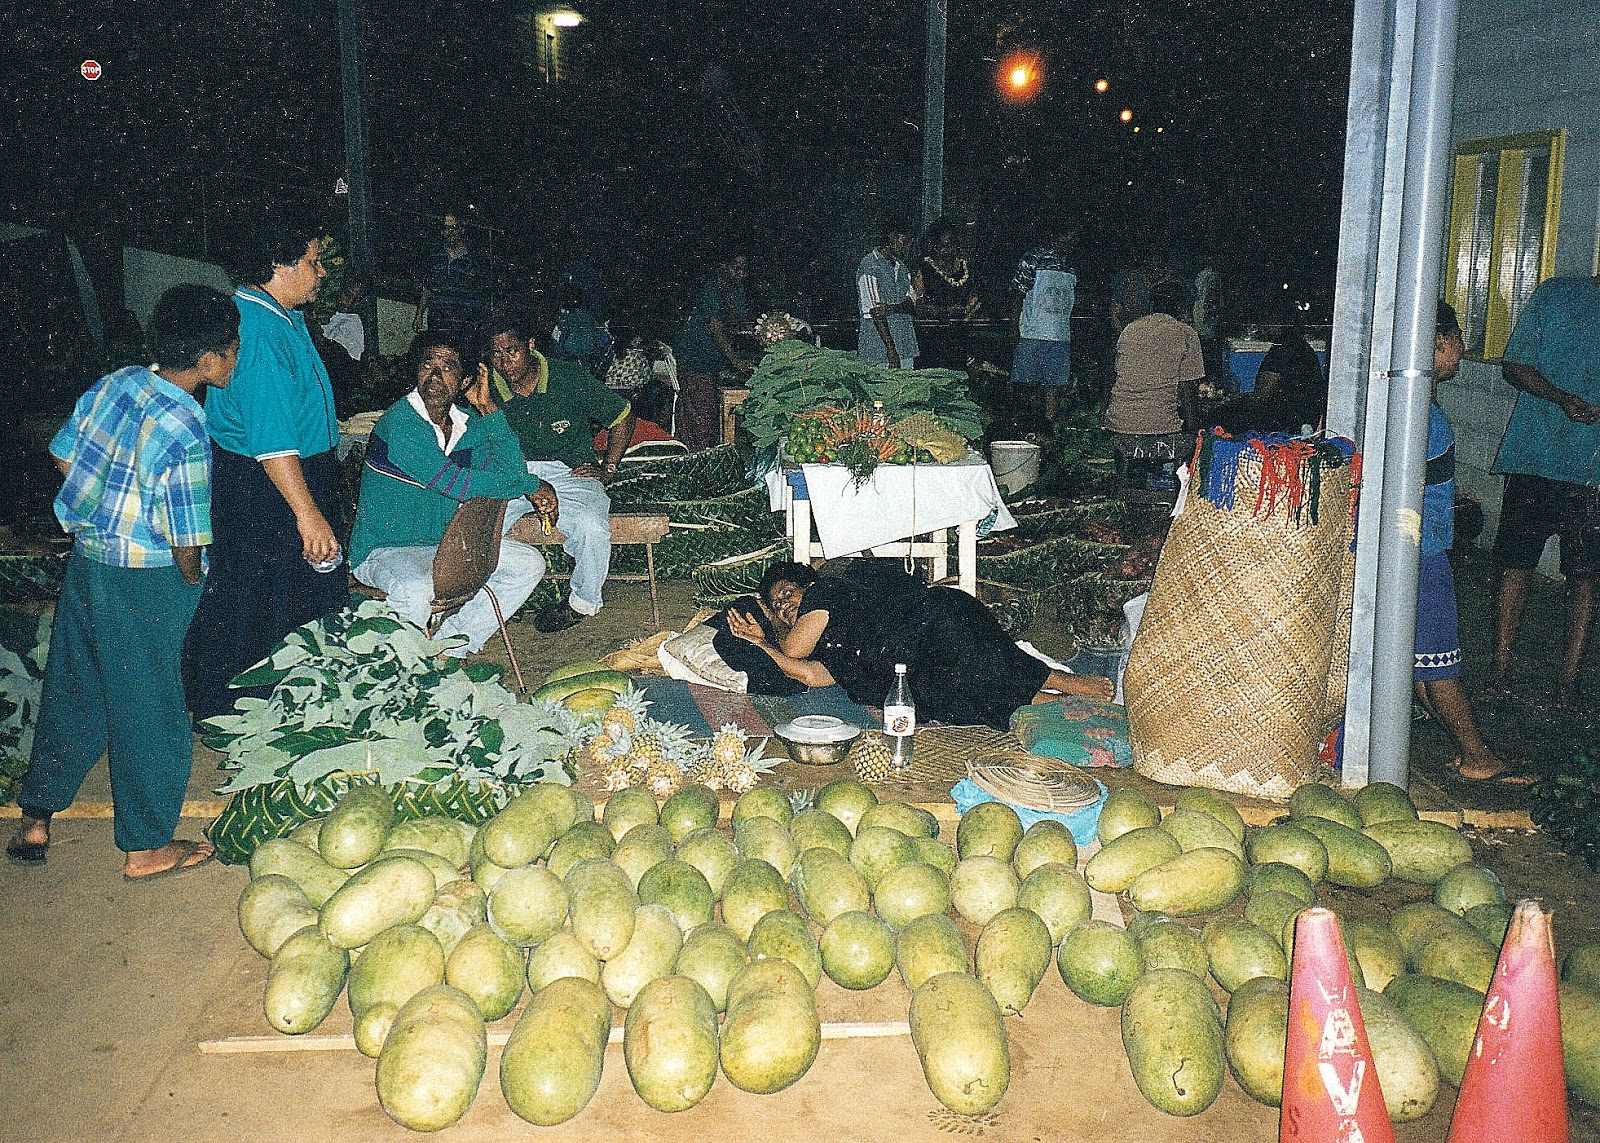 Tonga travel, where night markets are a must!